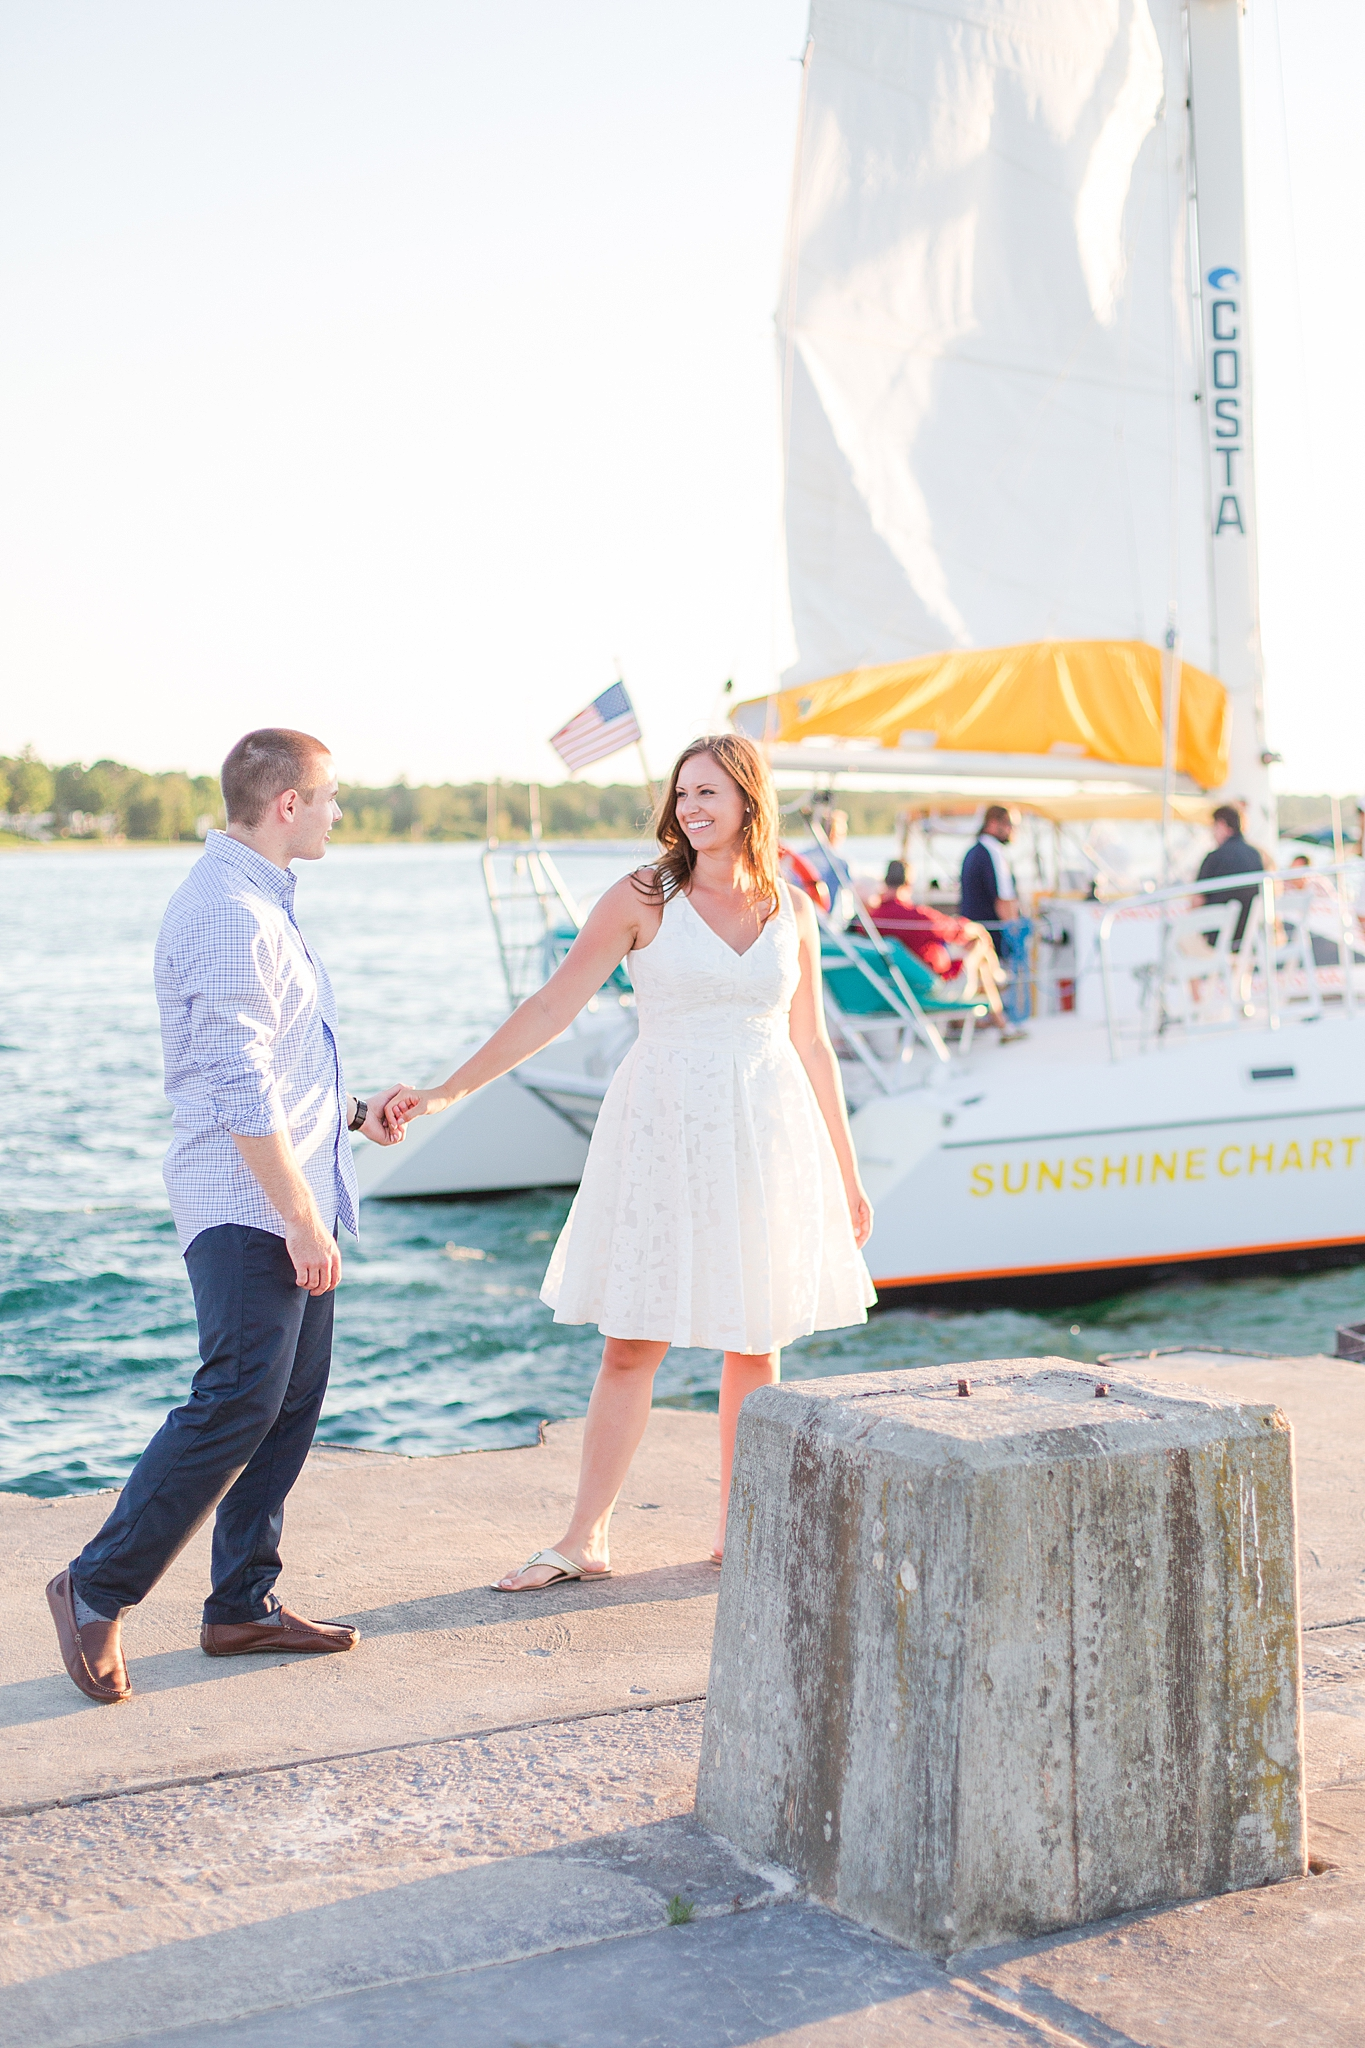 waterfront-lighthouse-engagement-photography-in-charlevoix-mi-by-courtney-carolyn-photography_0009.jpg